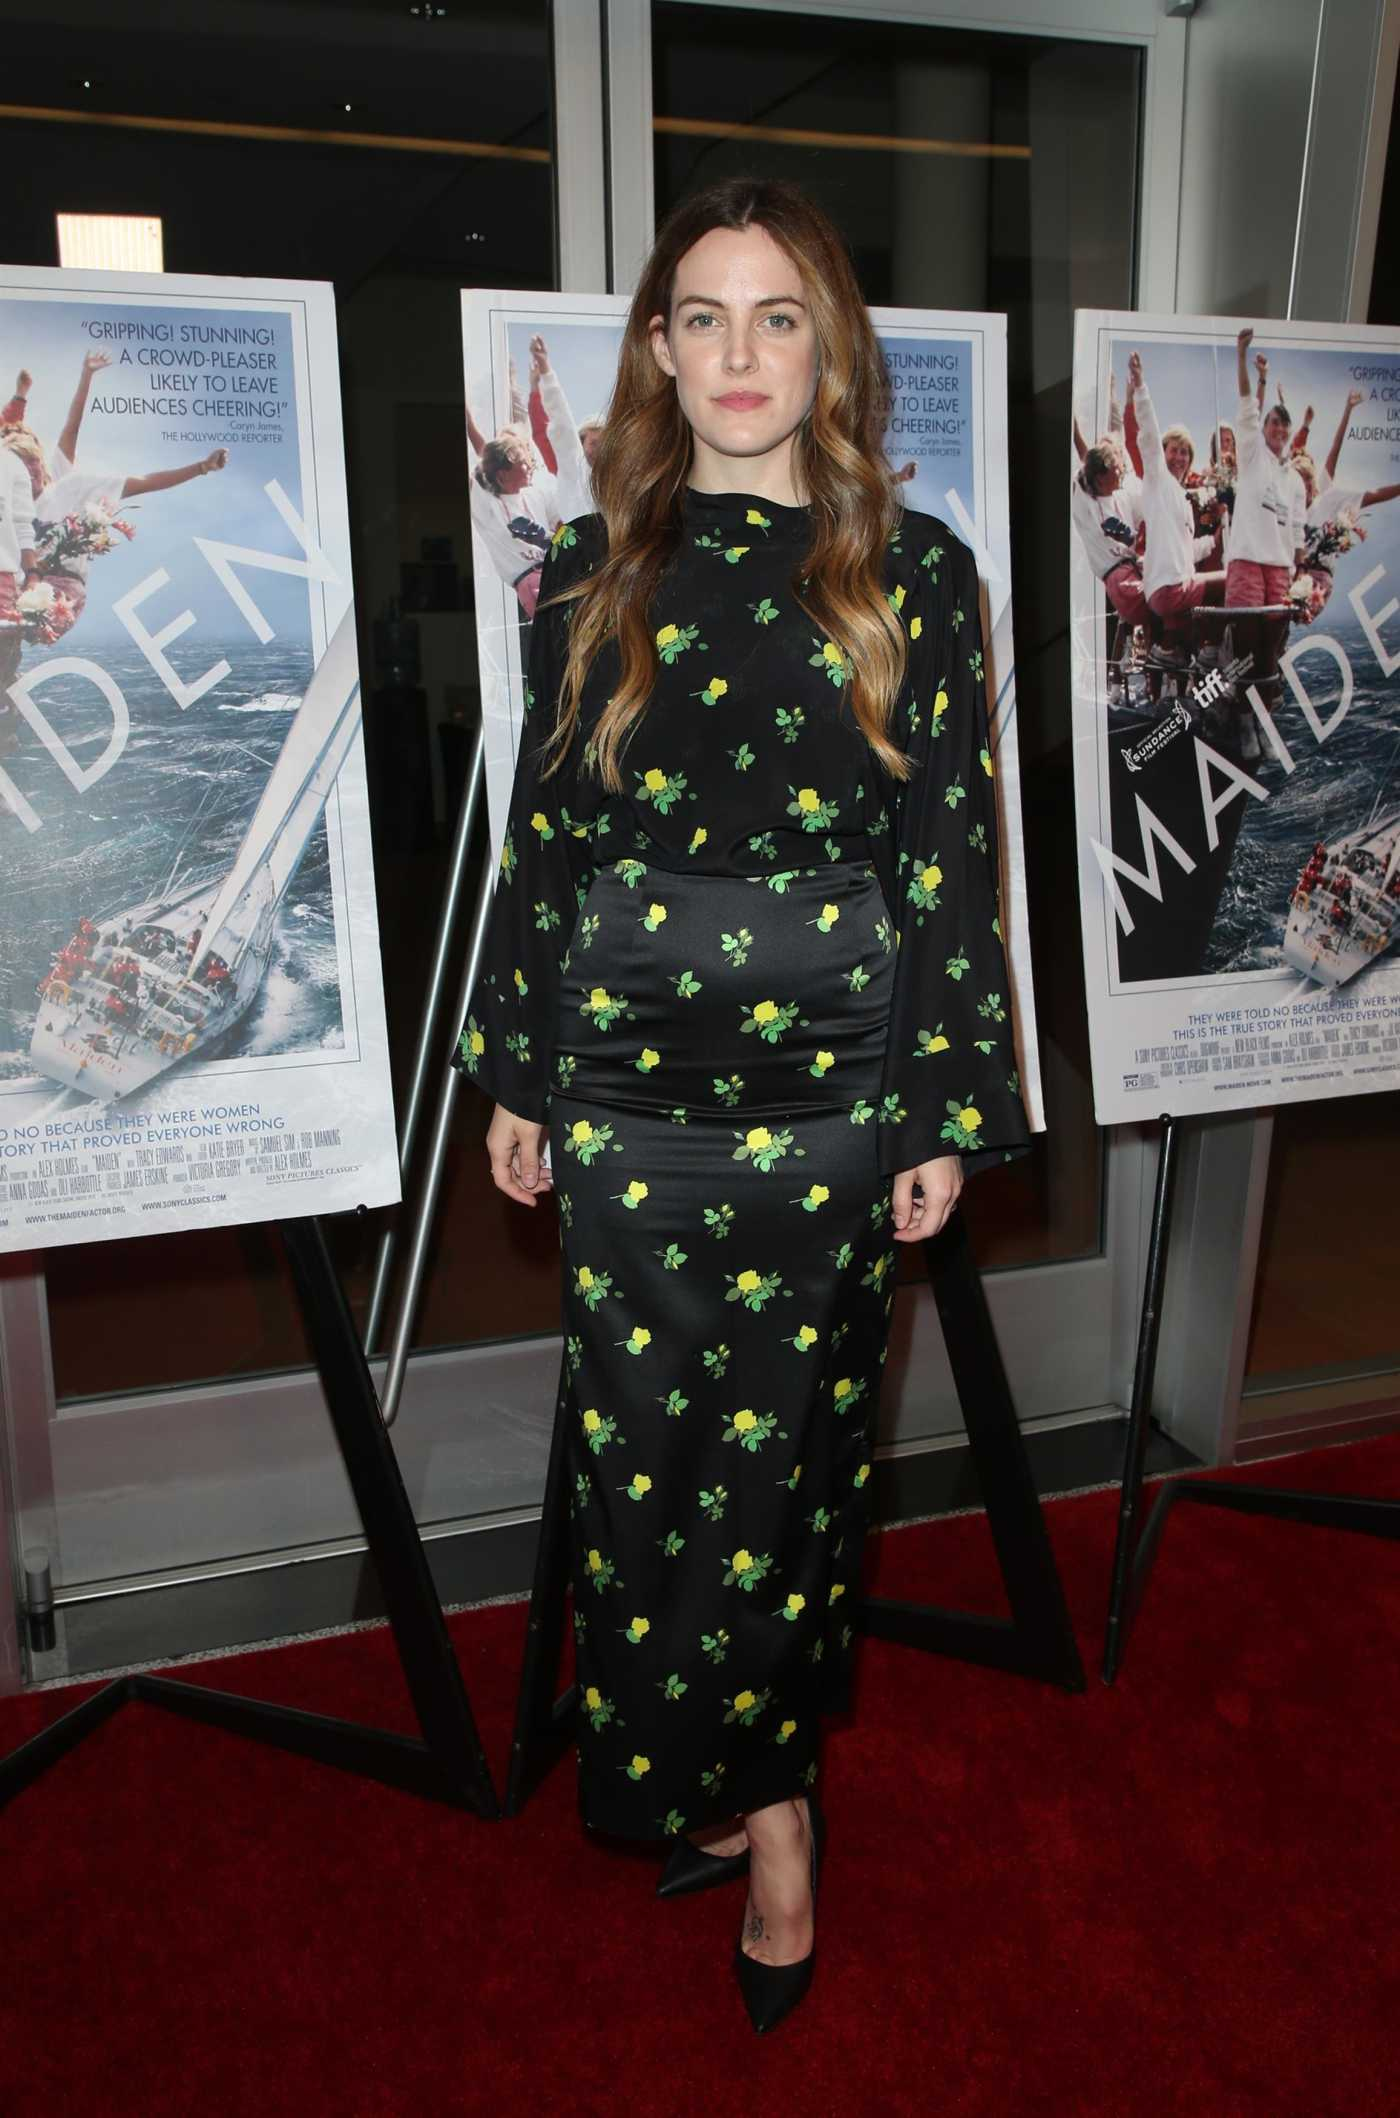 Riley Keough Attends the Maiden Premiere in LA 06/14/2019